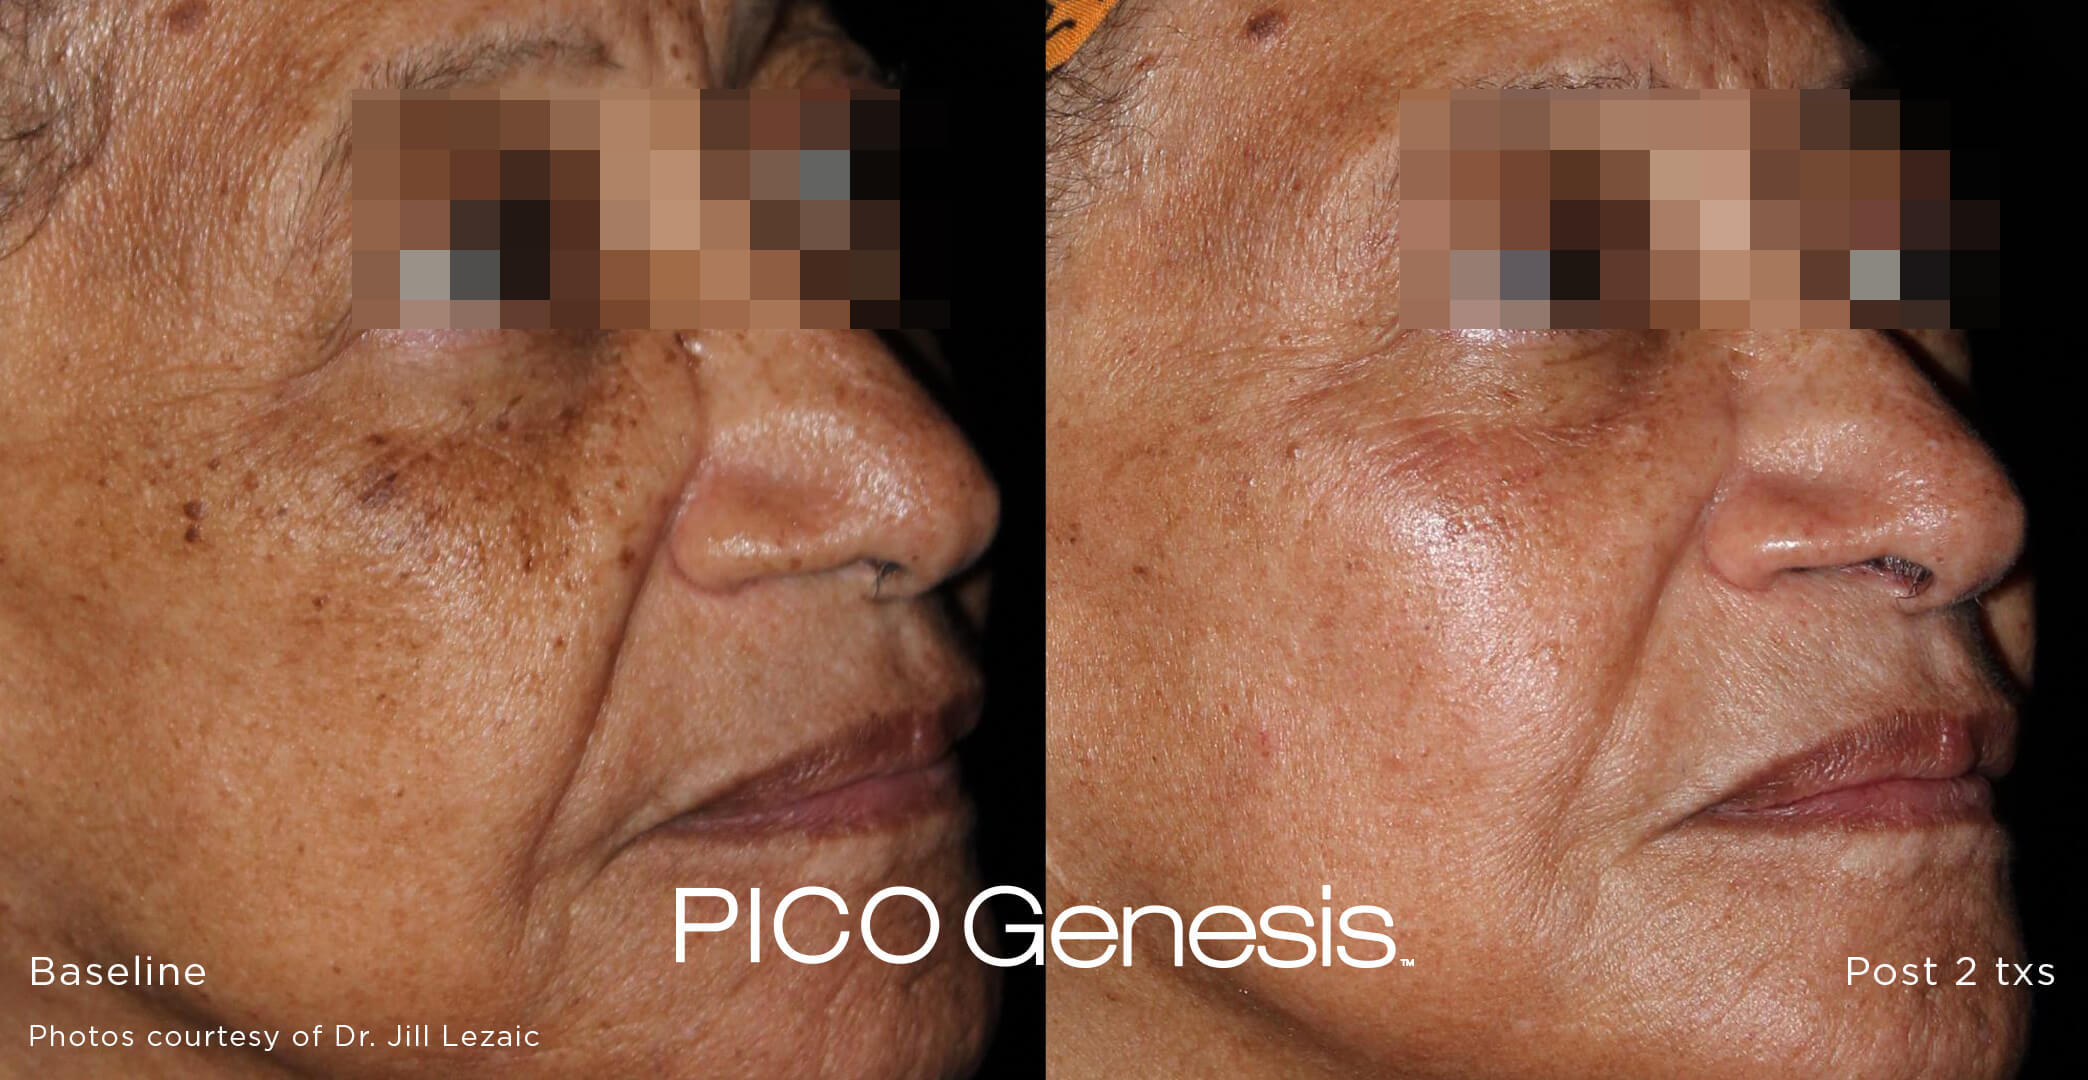 Before and after image of melasma and brown spot removal treatment after 2 treatment sessions with pico genesis laser - Miami Skin Spa